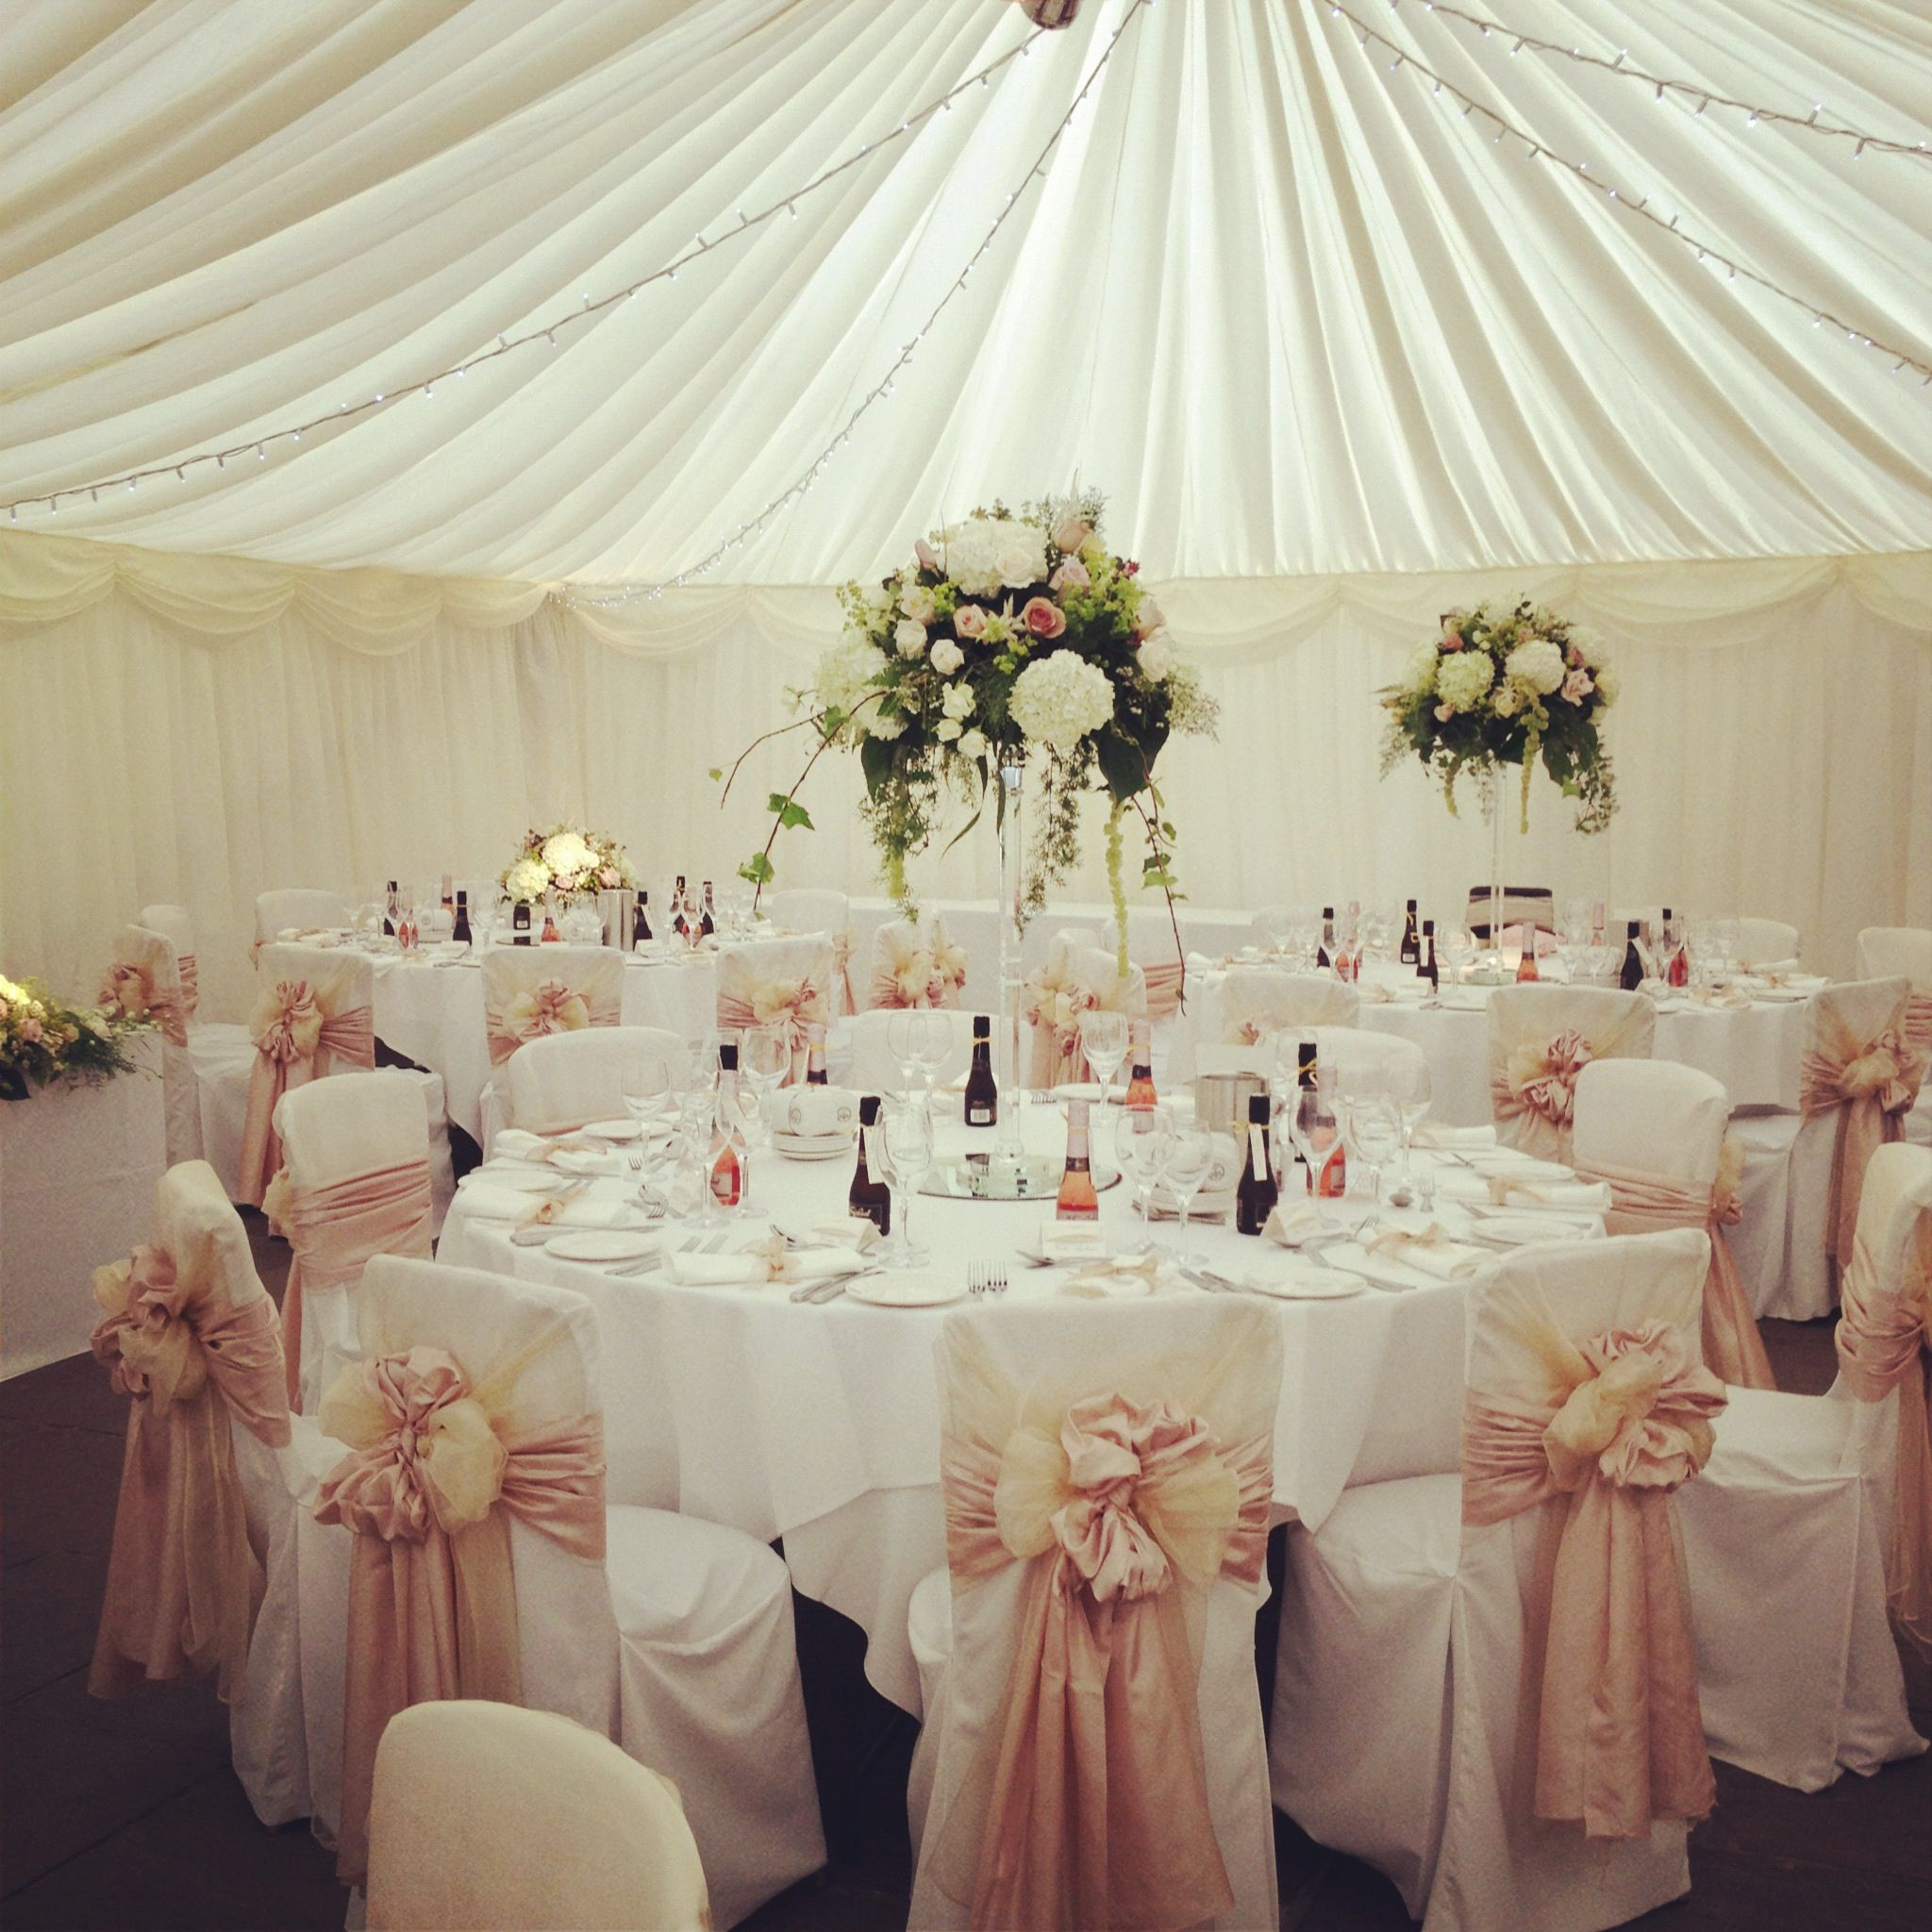 chair covers wedding yorkshire baseball office beautiful marquee keywords weddingmarquees